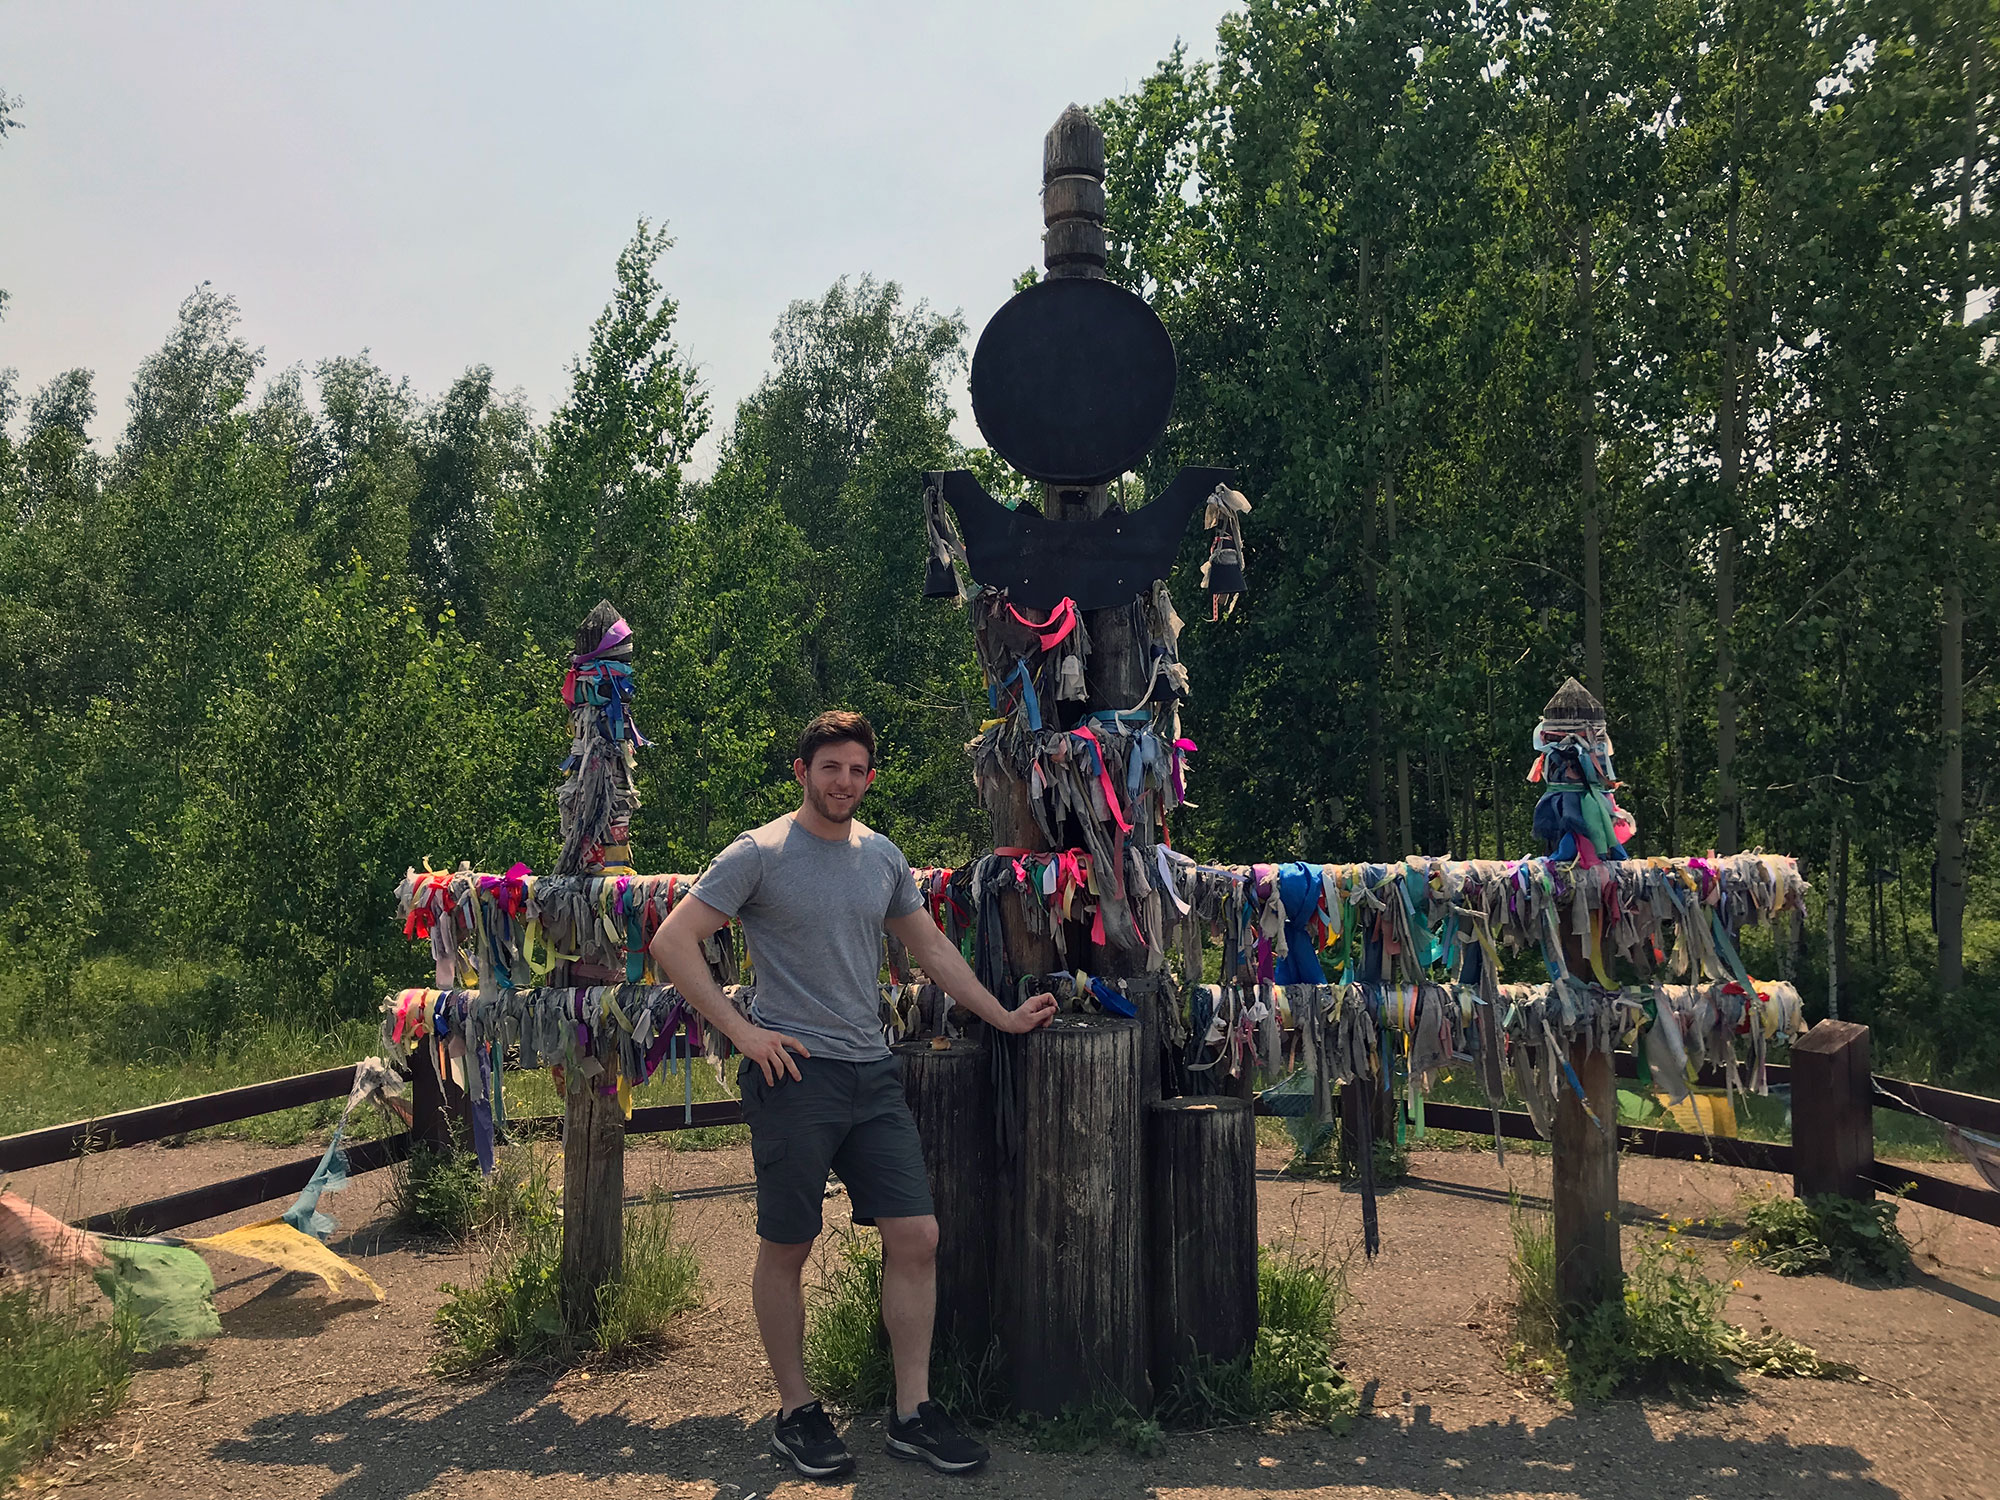 A simple outfit of shorts, t-shirt, and sneakers works anywhere from Moscow to the temple-laden shores of Lake Baikal.